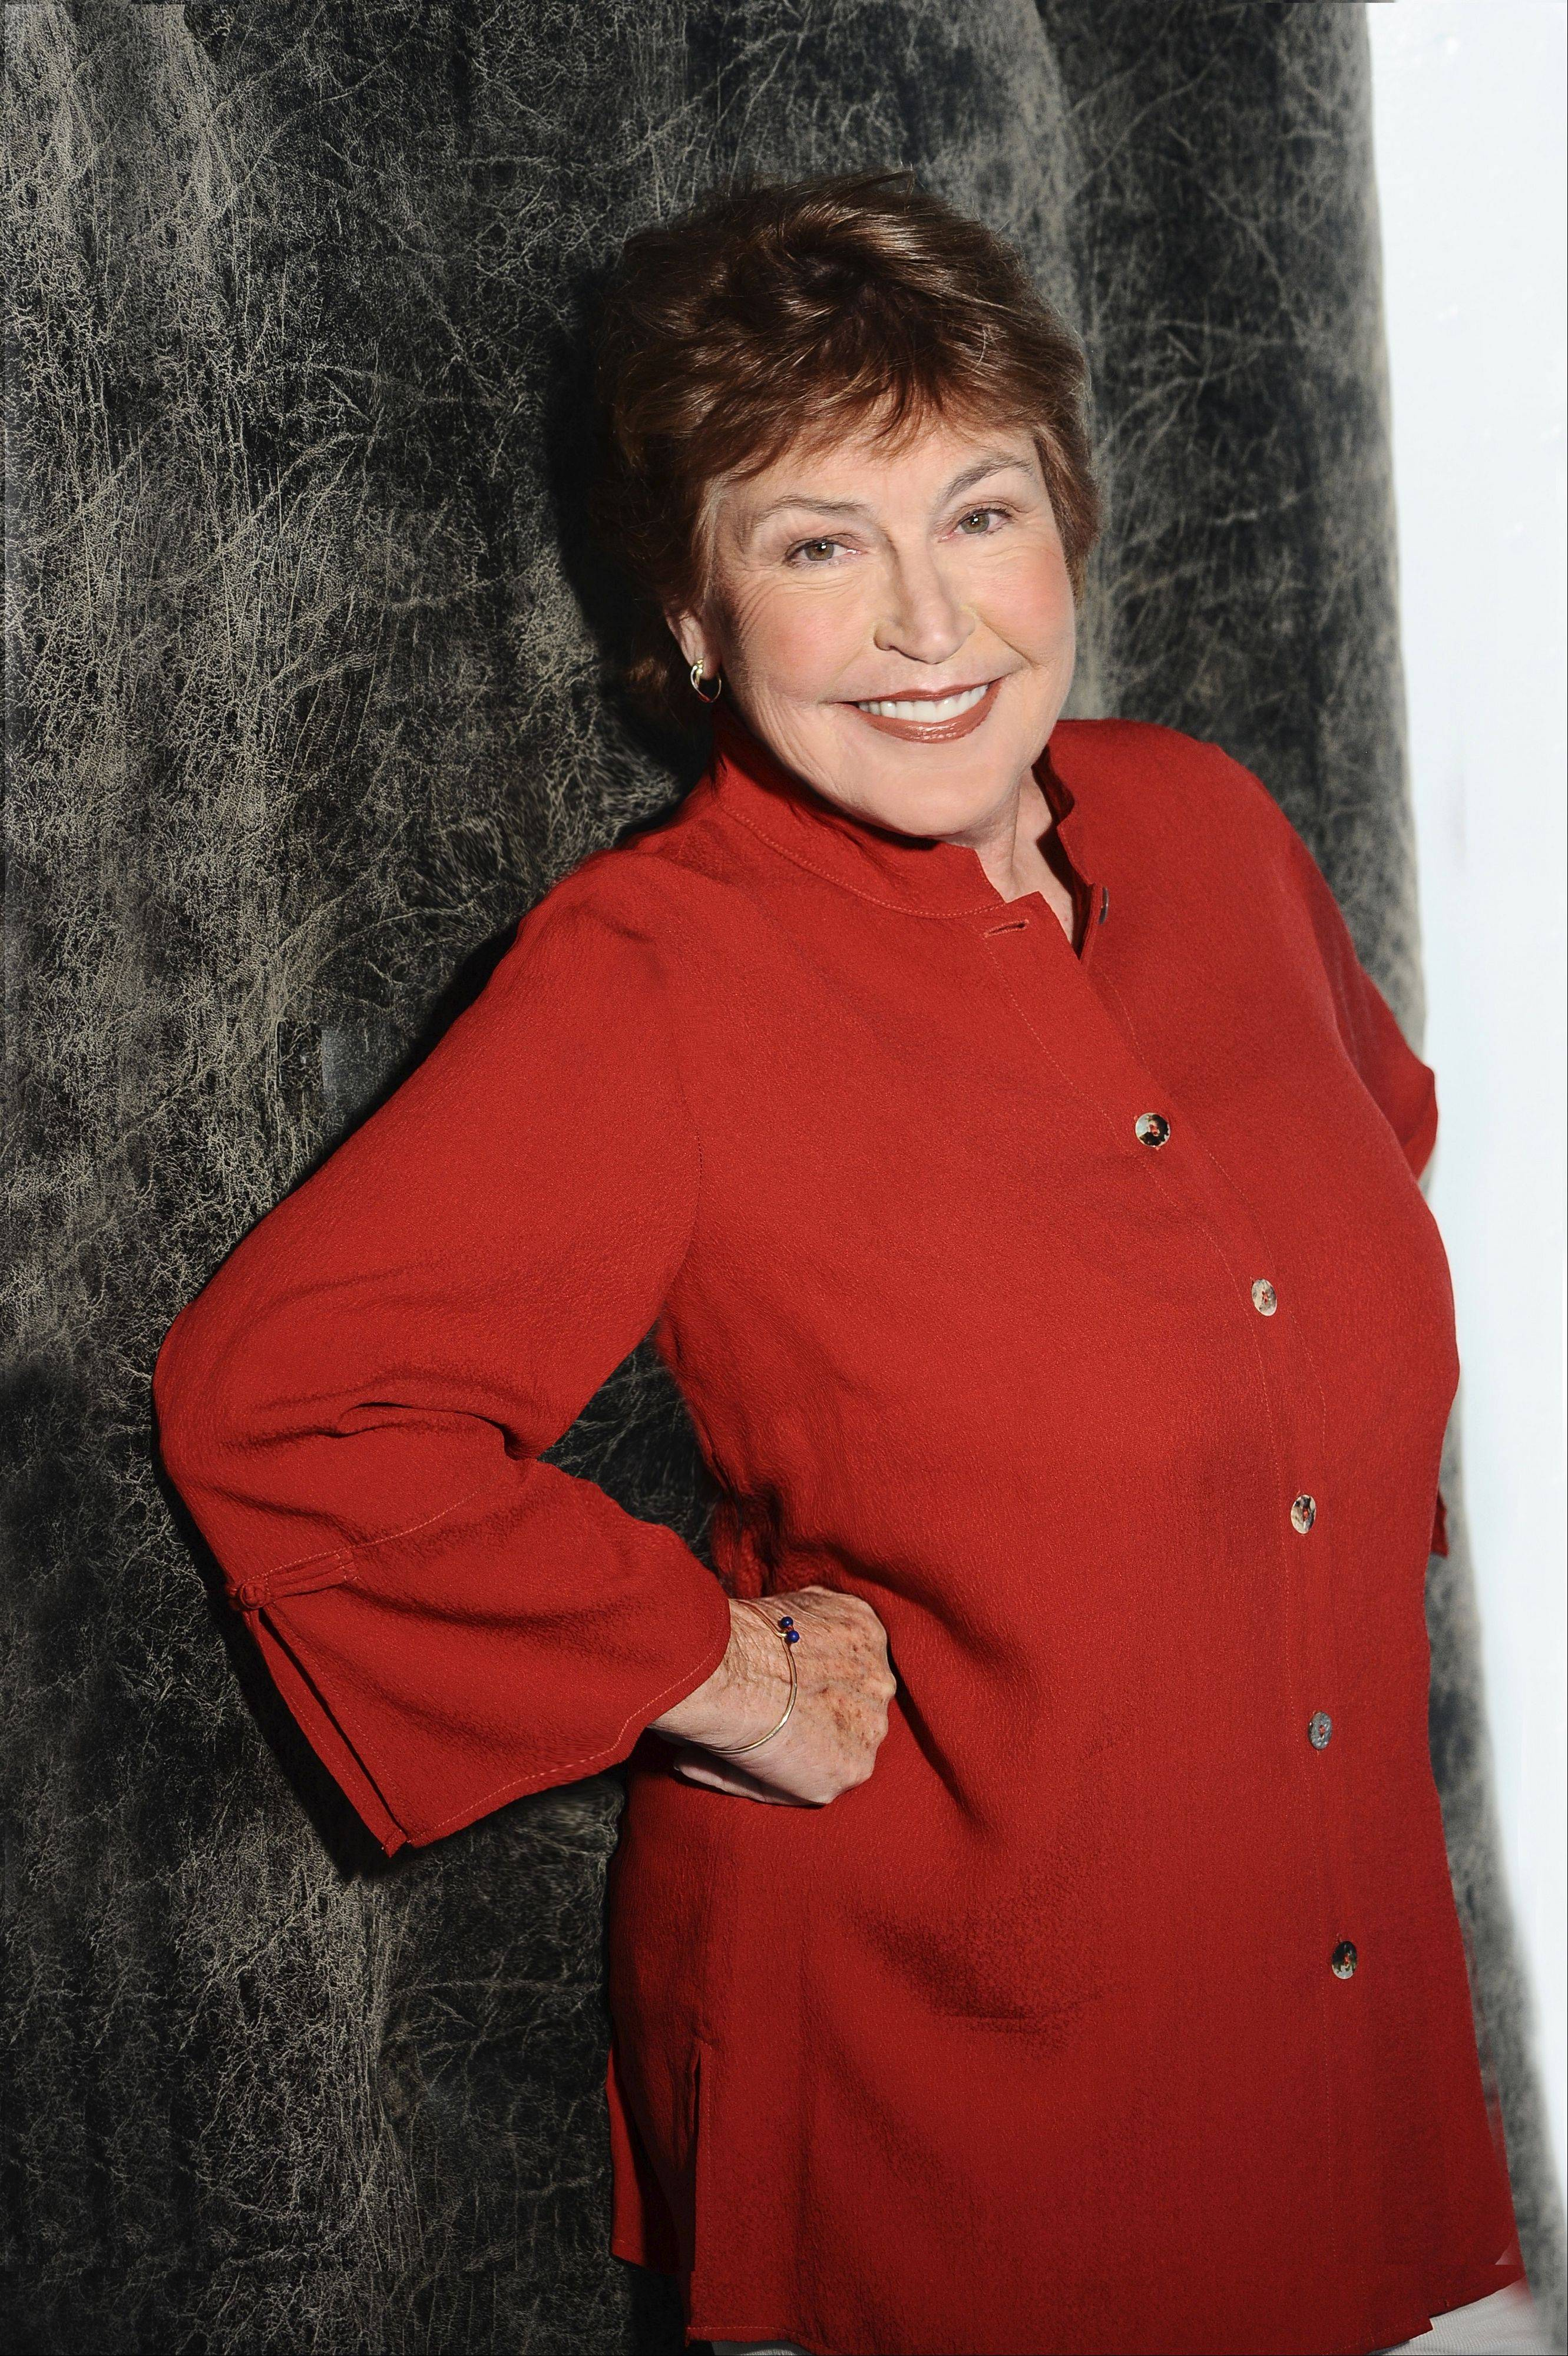 After 11 years away from the spotlight, Helen Reddy returns to performing. She comes to the Arcada Theatre in St. Charles on Wednesday, March 13.